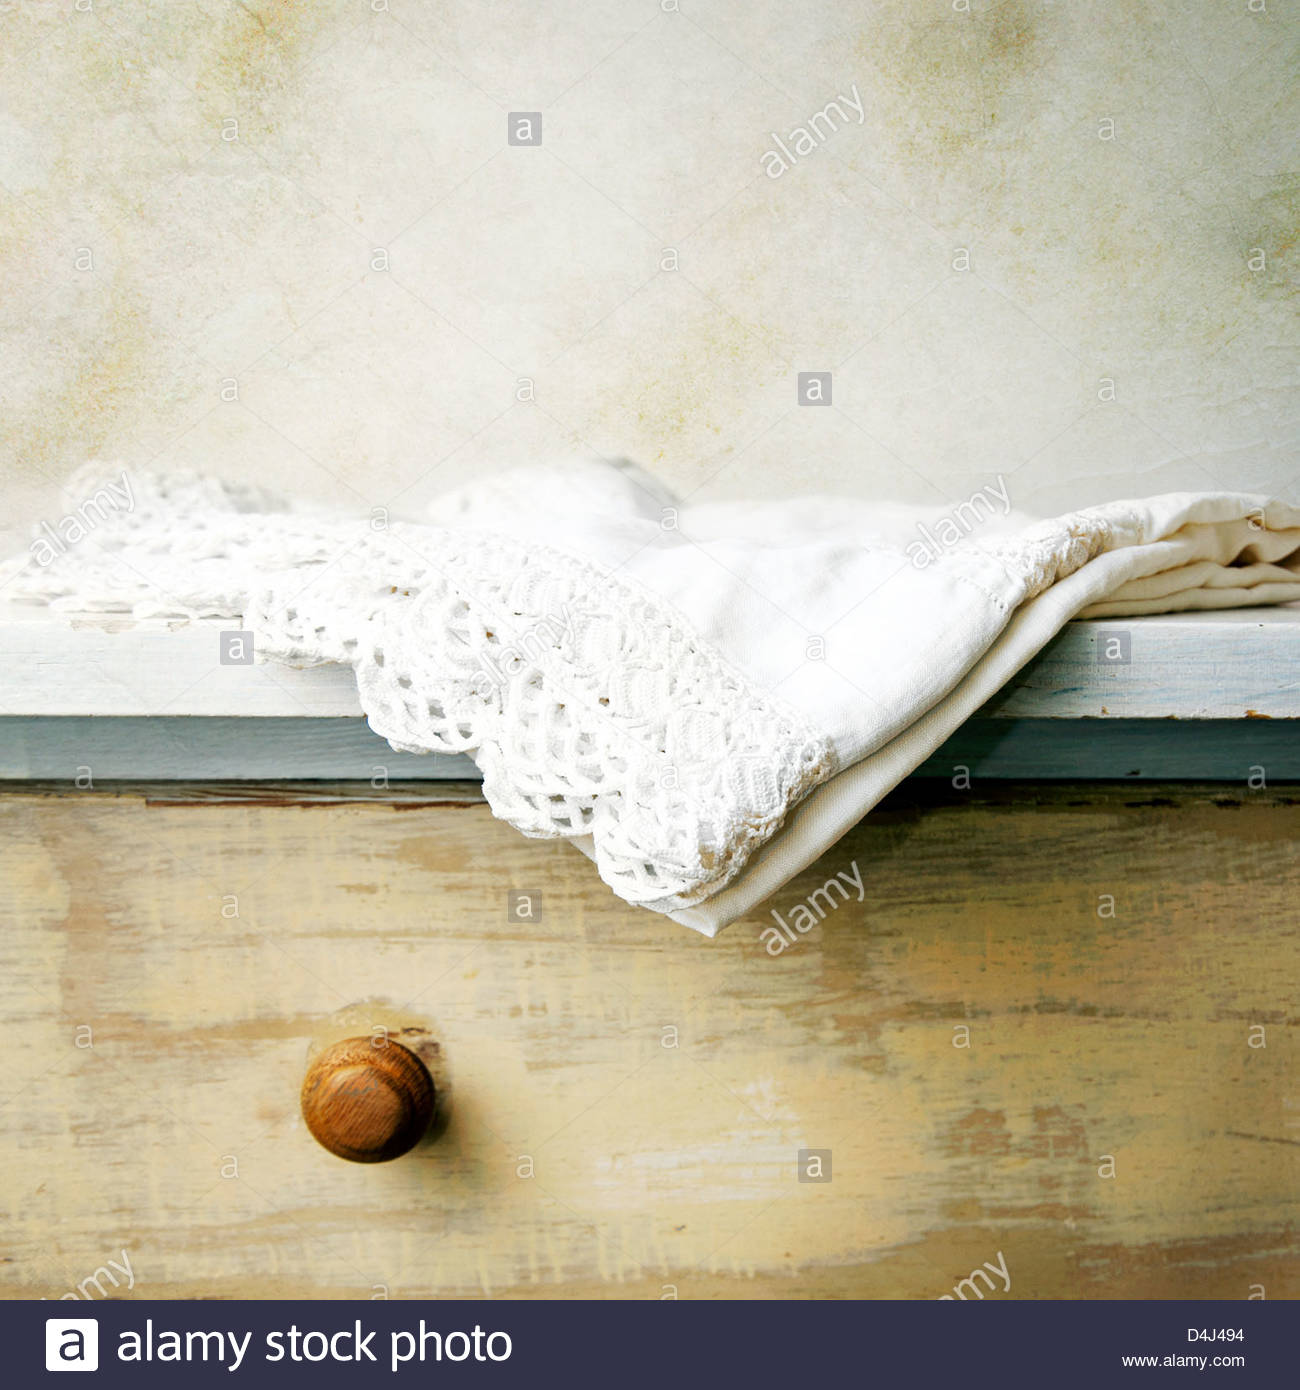 Old hand made lace pillow case hanging off edge of dresser in bedroom - Stock Image